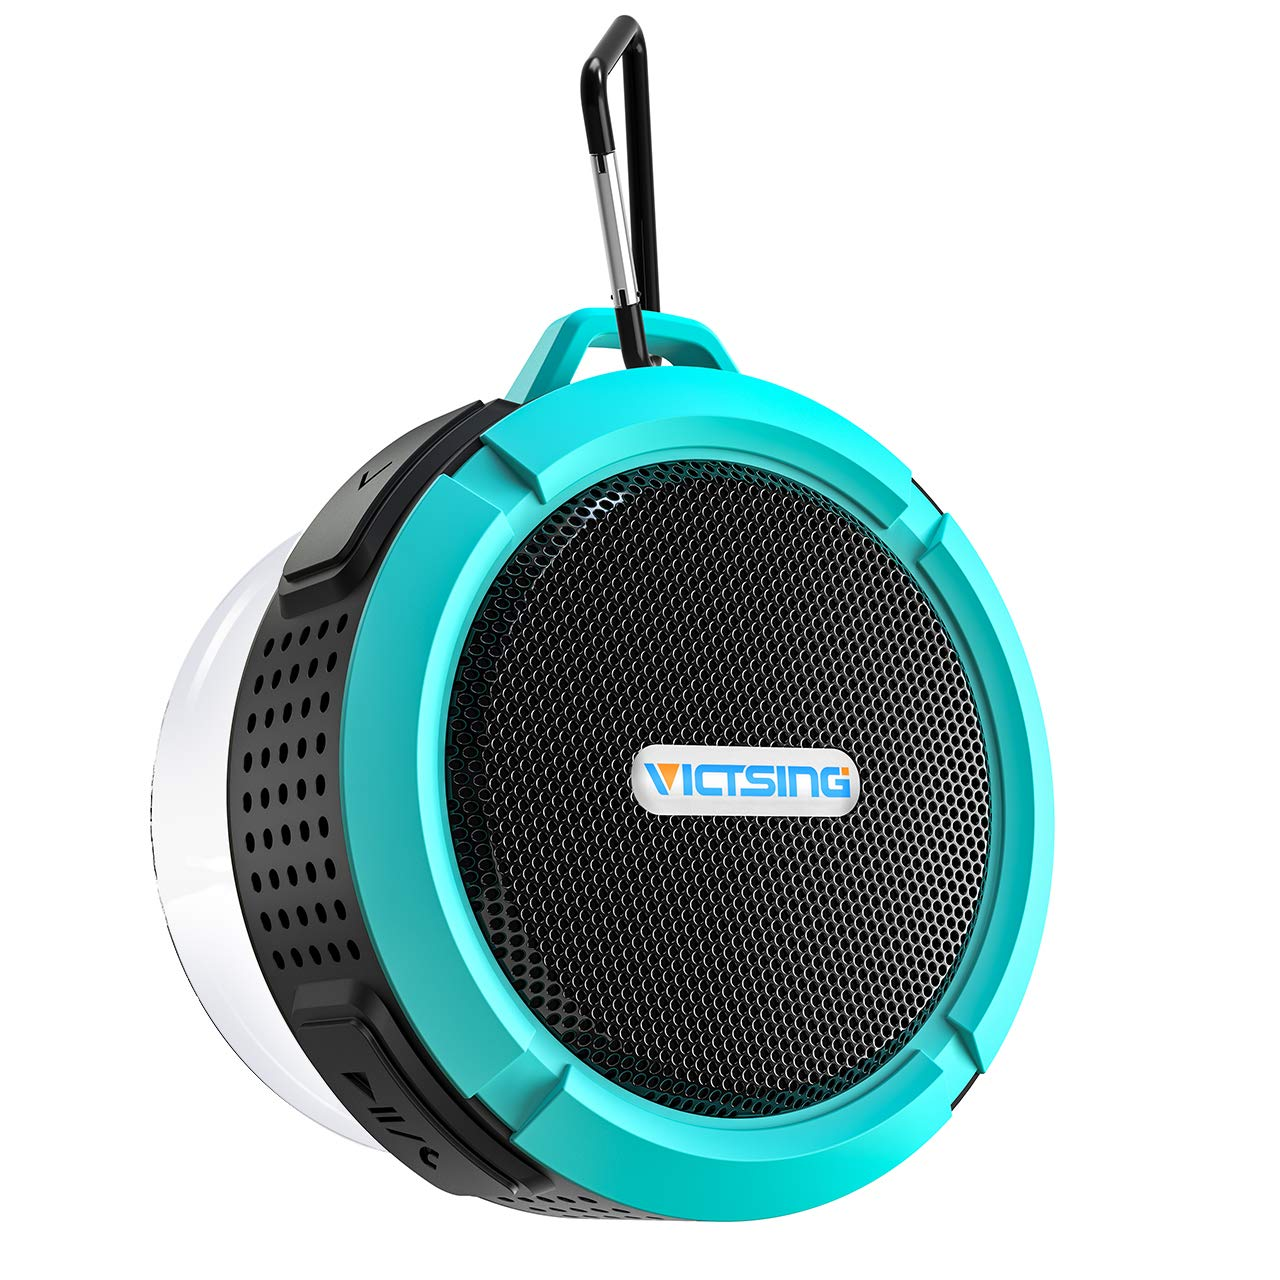 victsing-soundhot-c6-portable-bluetooth-speaker-waterproof-bluetooth-speaker-with-6h-playtime-loud-hd-sound-shower-speaker-with-suction-cup-sturdy-hook-compatible-with-ios-android-pc